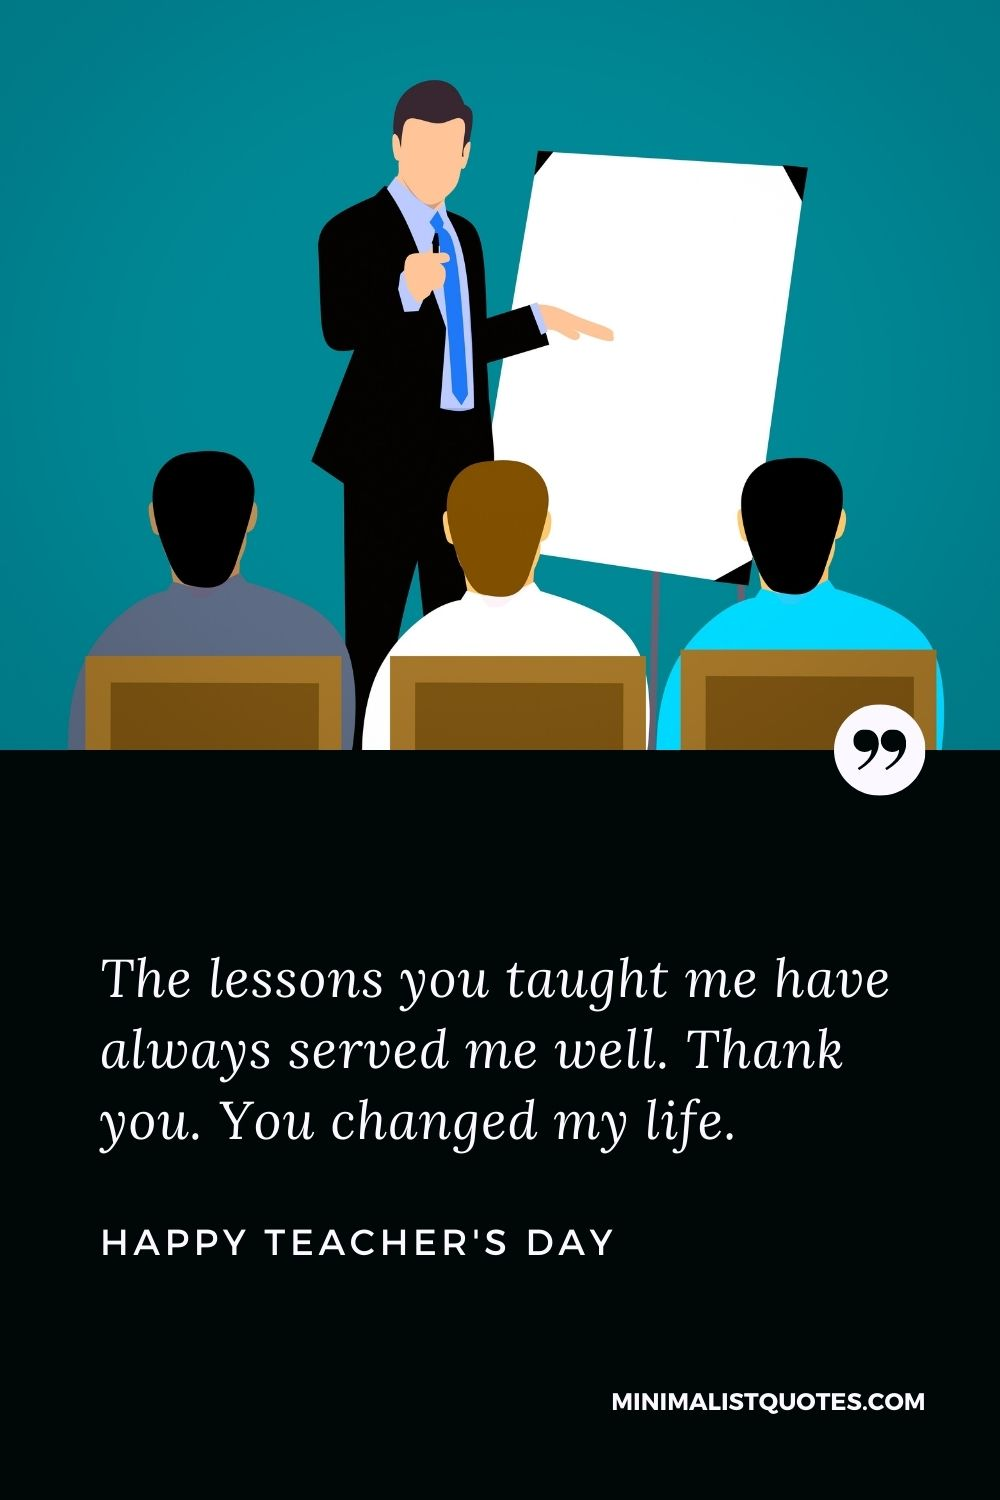 Teacher's Day Wish & Message With HD Image: The lessons you taught me have always served me well. Thank you. You changed my life. Happy Teacher's Day!